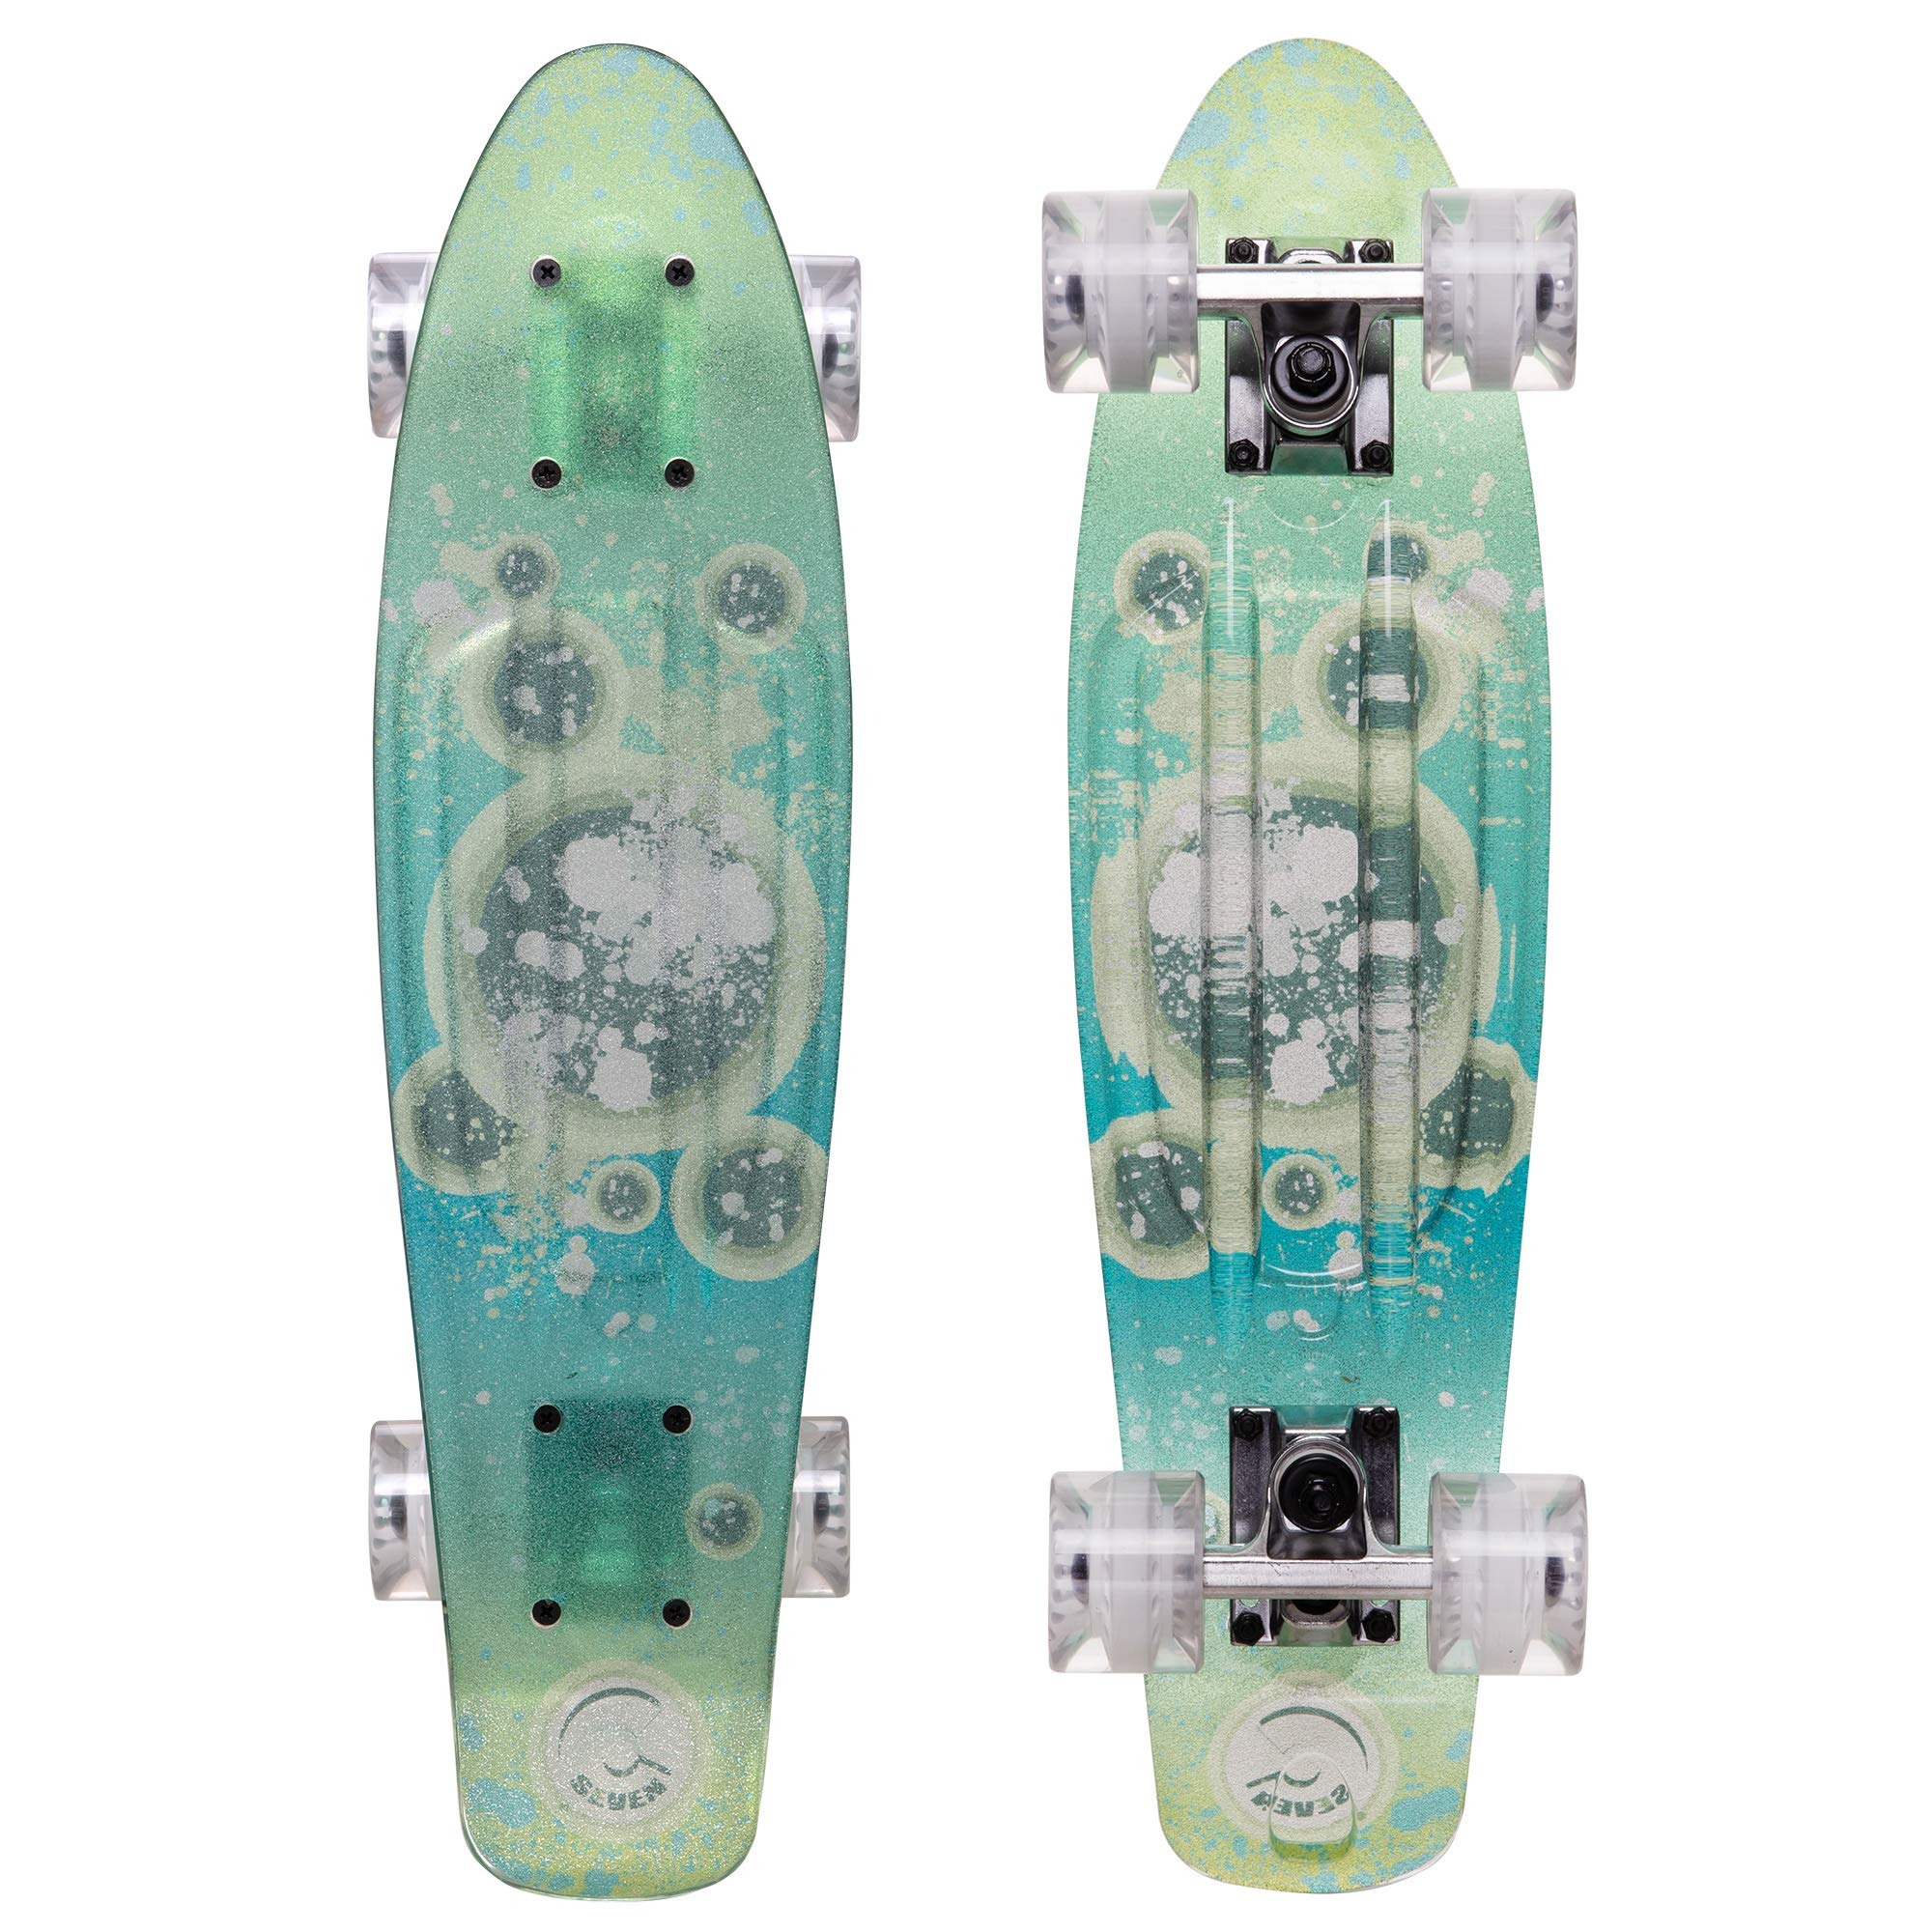 Cal 7 Complete Mini Cruiser   22 Inch Micro Board   Vintage Skateboard for School and Travel (Transparent Nebula) by Cal 7